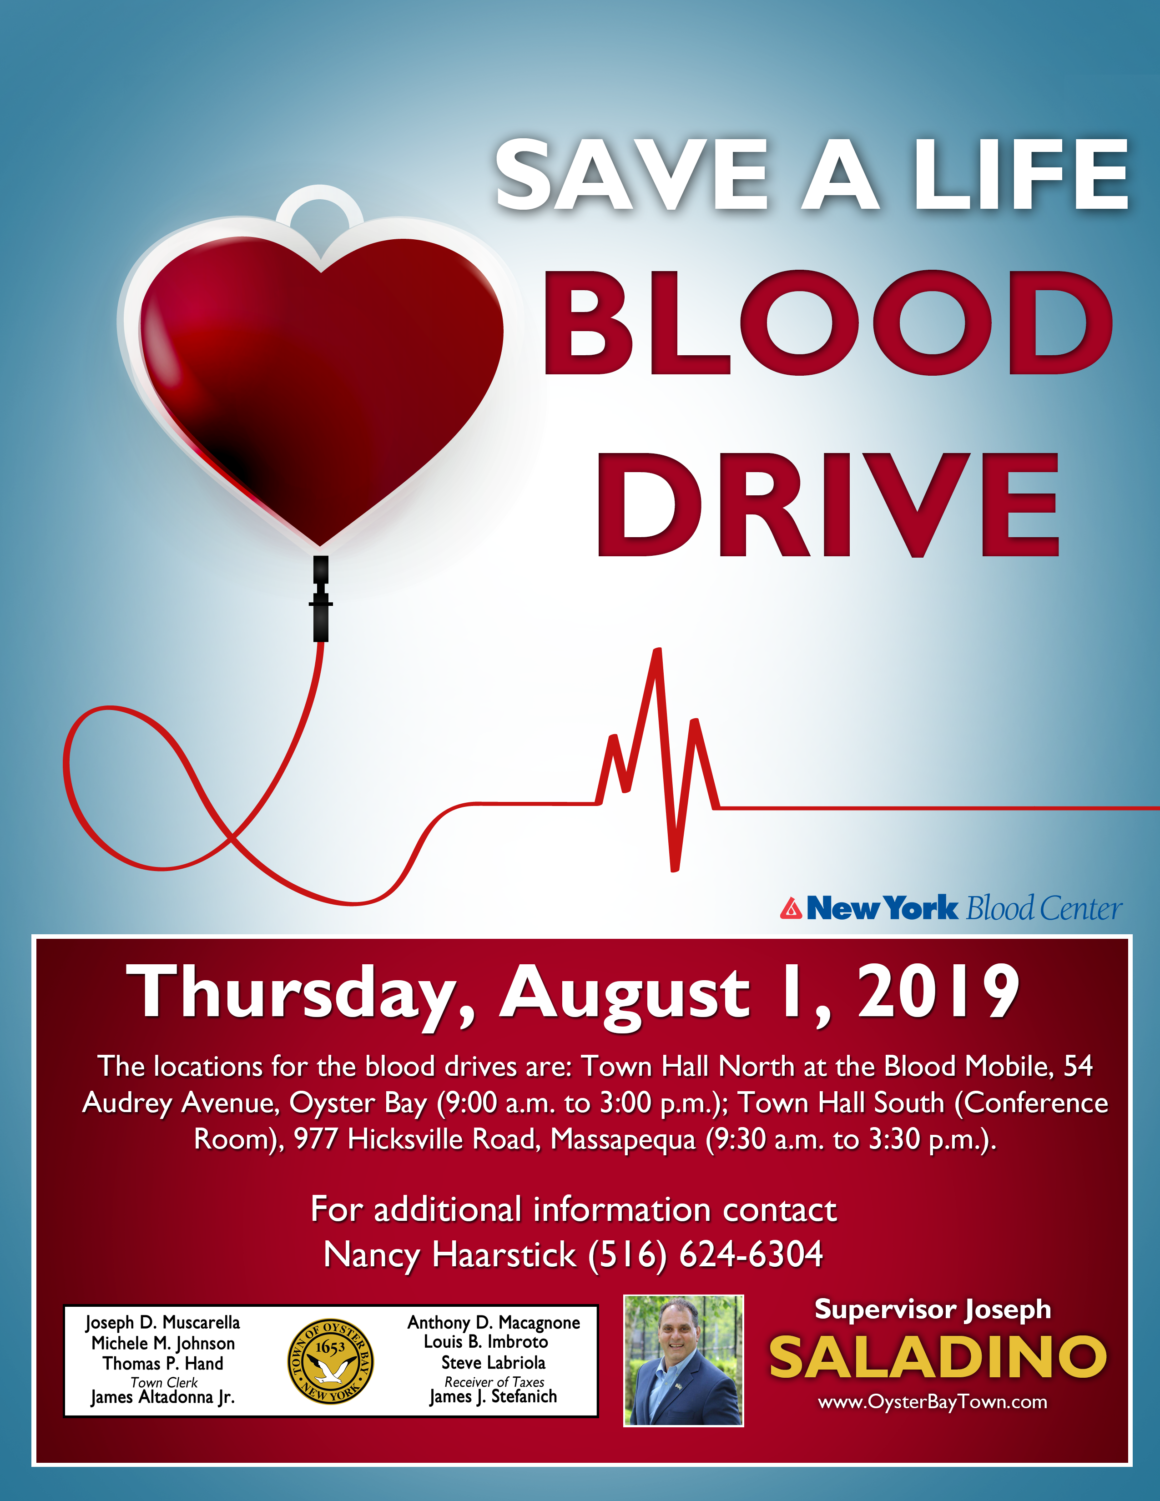 Saladino and Town Board Urge Residents to Help Fulfill Blood Shortage by Donating on August 1st